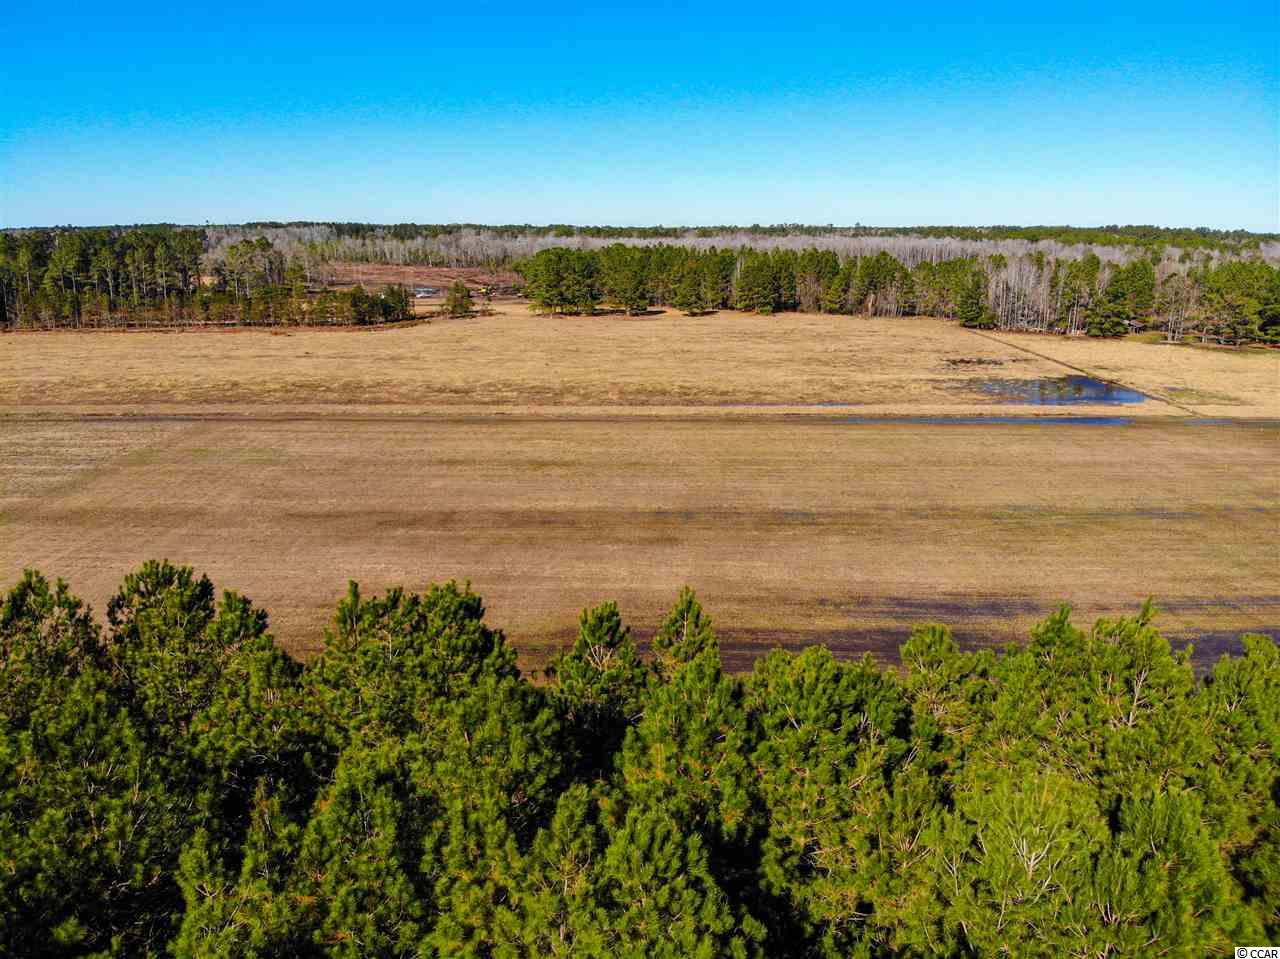 Nice long lot that you can farm or build on. A mix of wooded area and cleared land to suit whichever you prefer. No HOA to restrict your imagination! 12.64 acres and 225 feet of road frontage. Hurry, this won't last long!